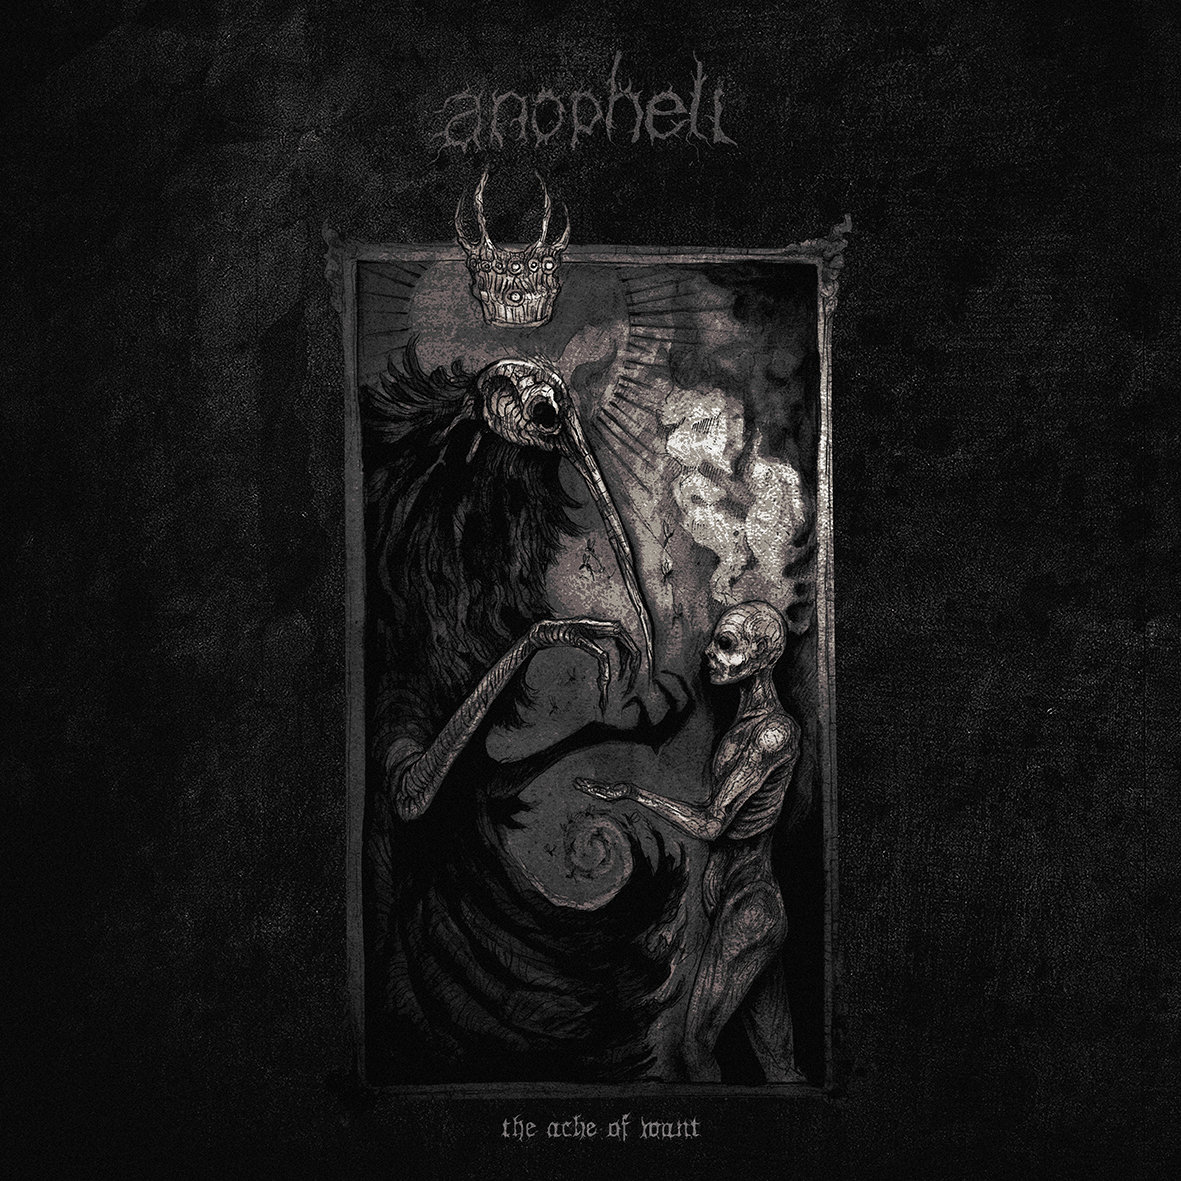 Anopheli - Trade @ 'The Ache Of Want' album (metal, cello)